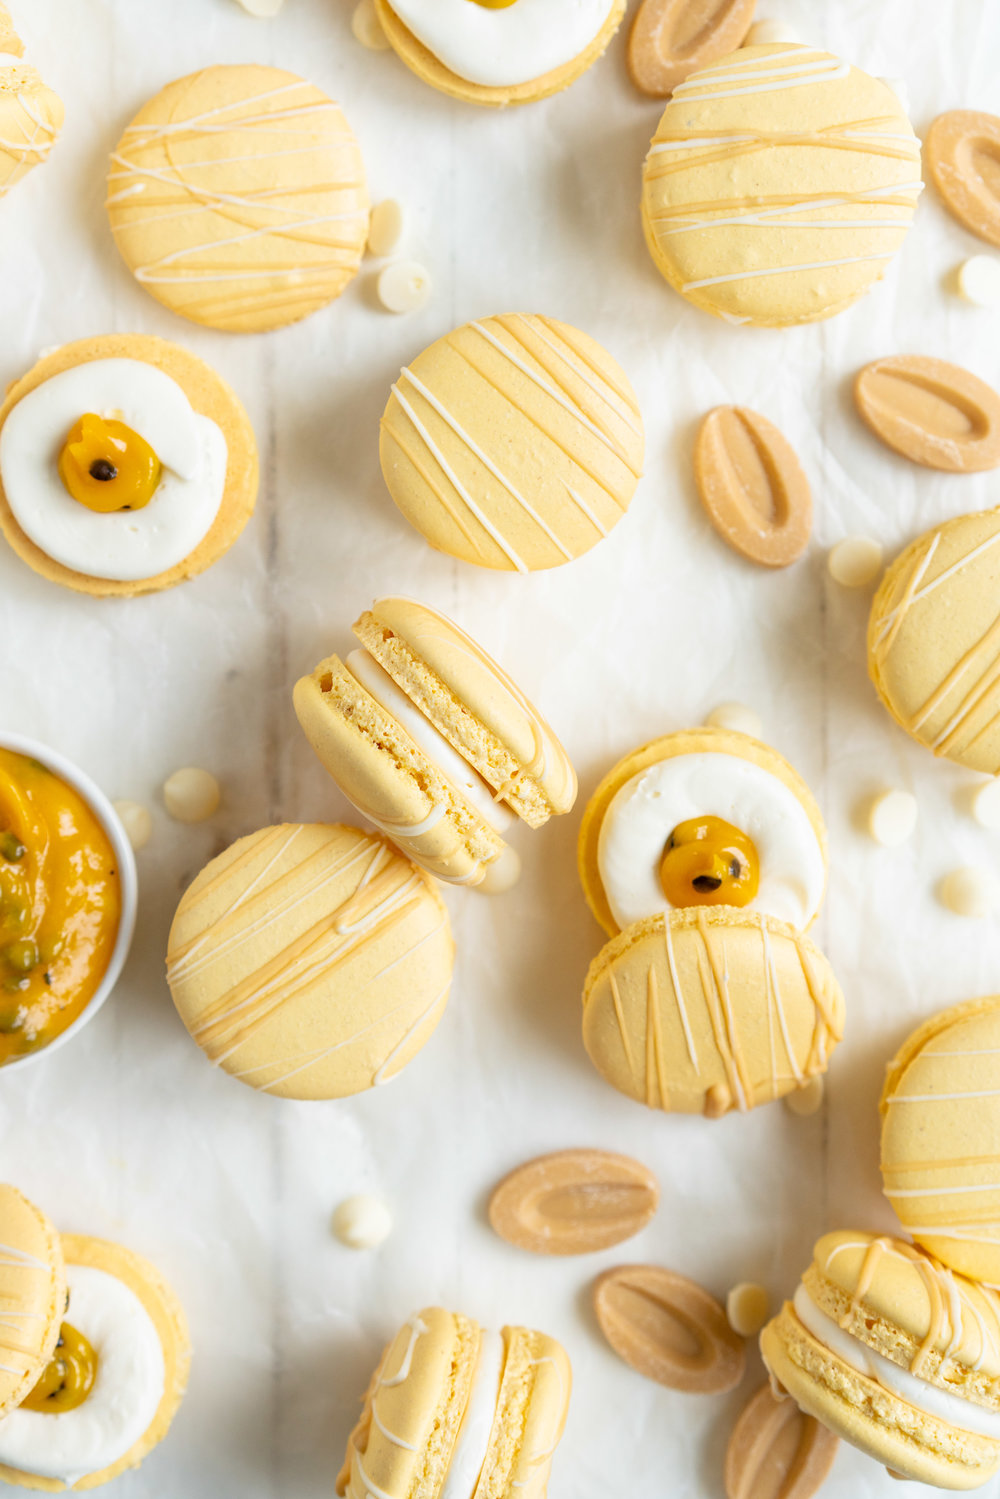 Passionfruit and White Chocolate Macarons - Vanilla bean macaron shell, filled with white chocolate swiss meringue buttercream and tangy passionfruit curd, then finished with a chocolate drizzle. #frenchmacaron #macarons #passionfruit